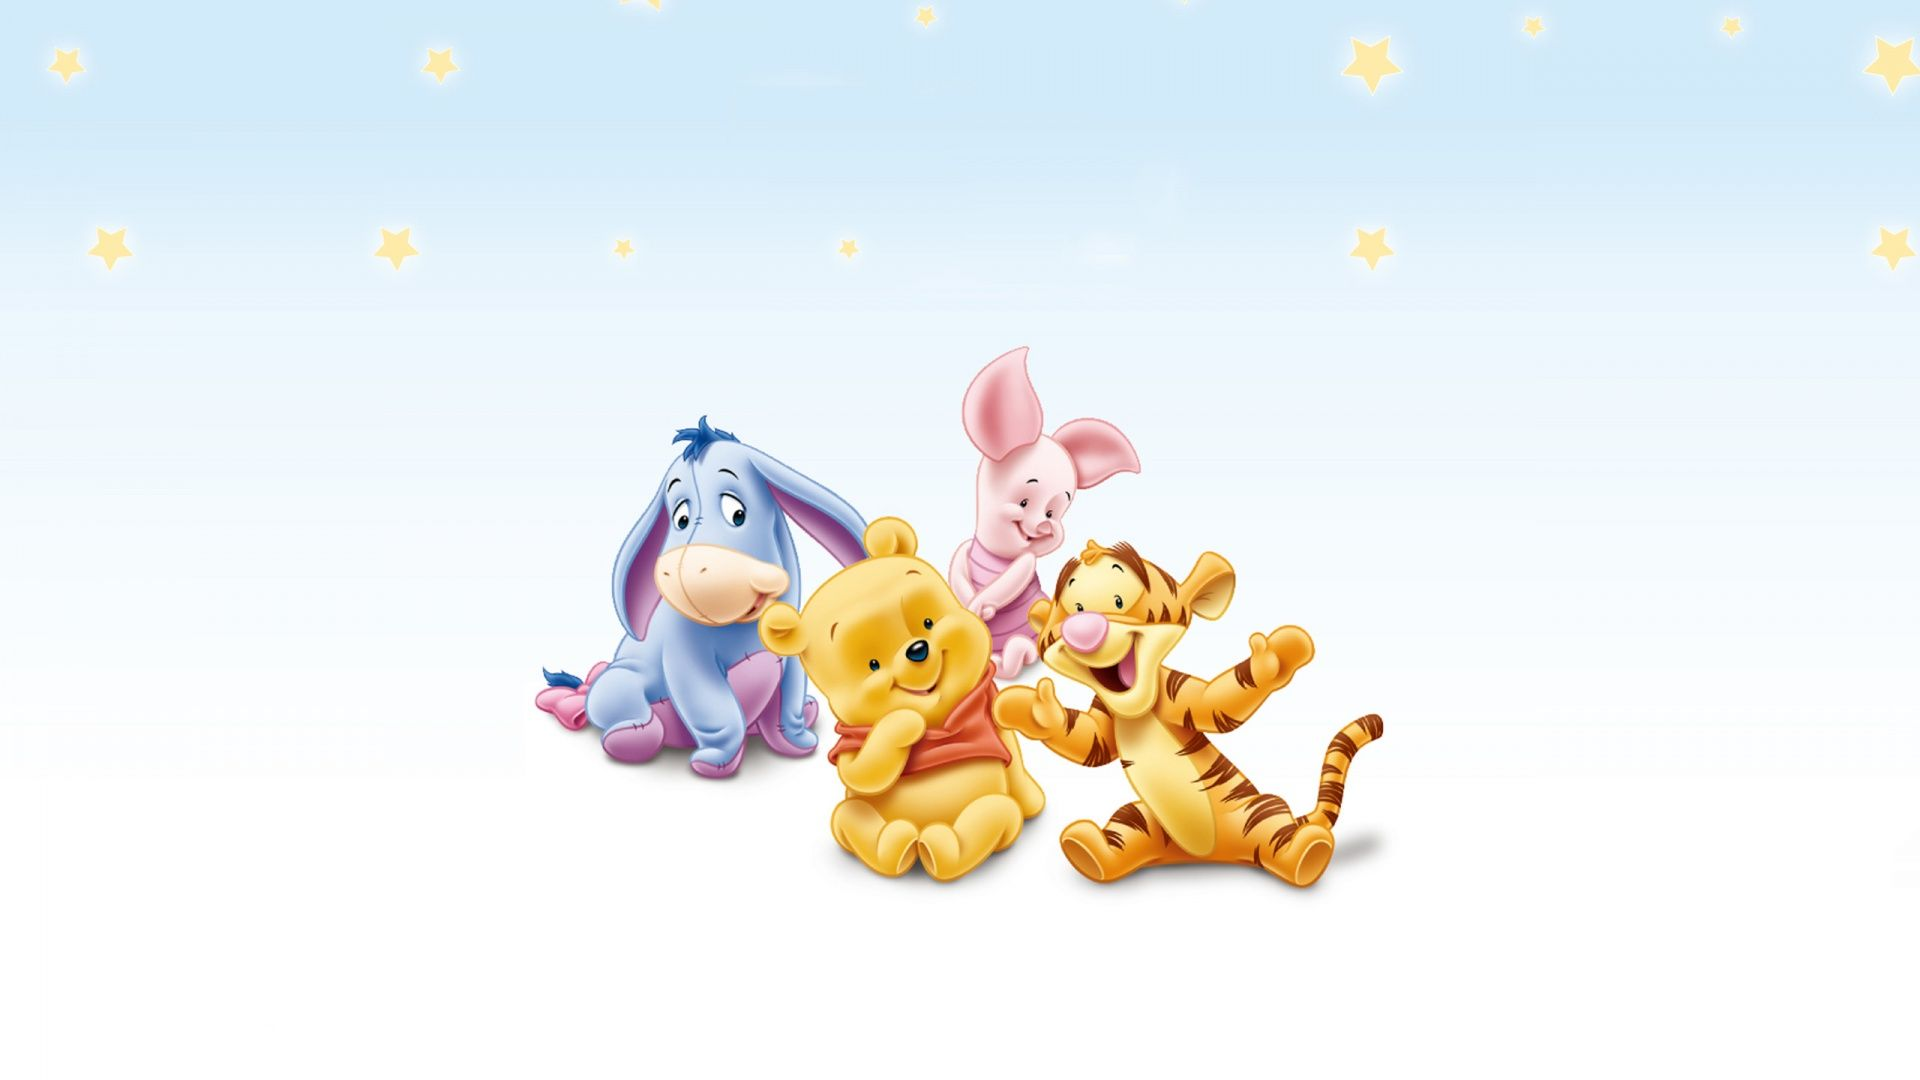 Hawaiidermatology Com Disney Characters Wallpaper Disney Wallpaper Cute Winnie The Pooh